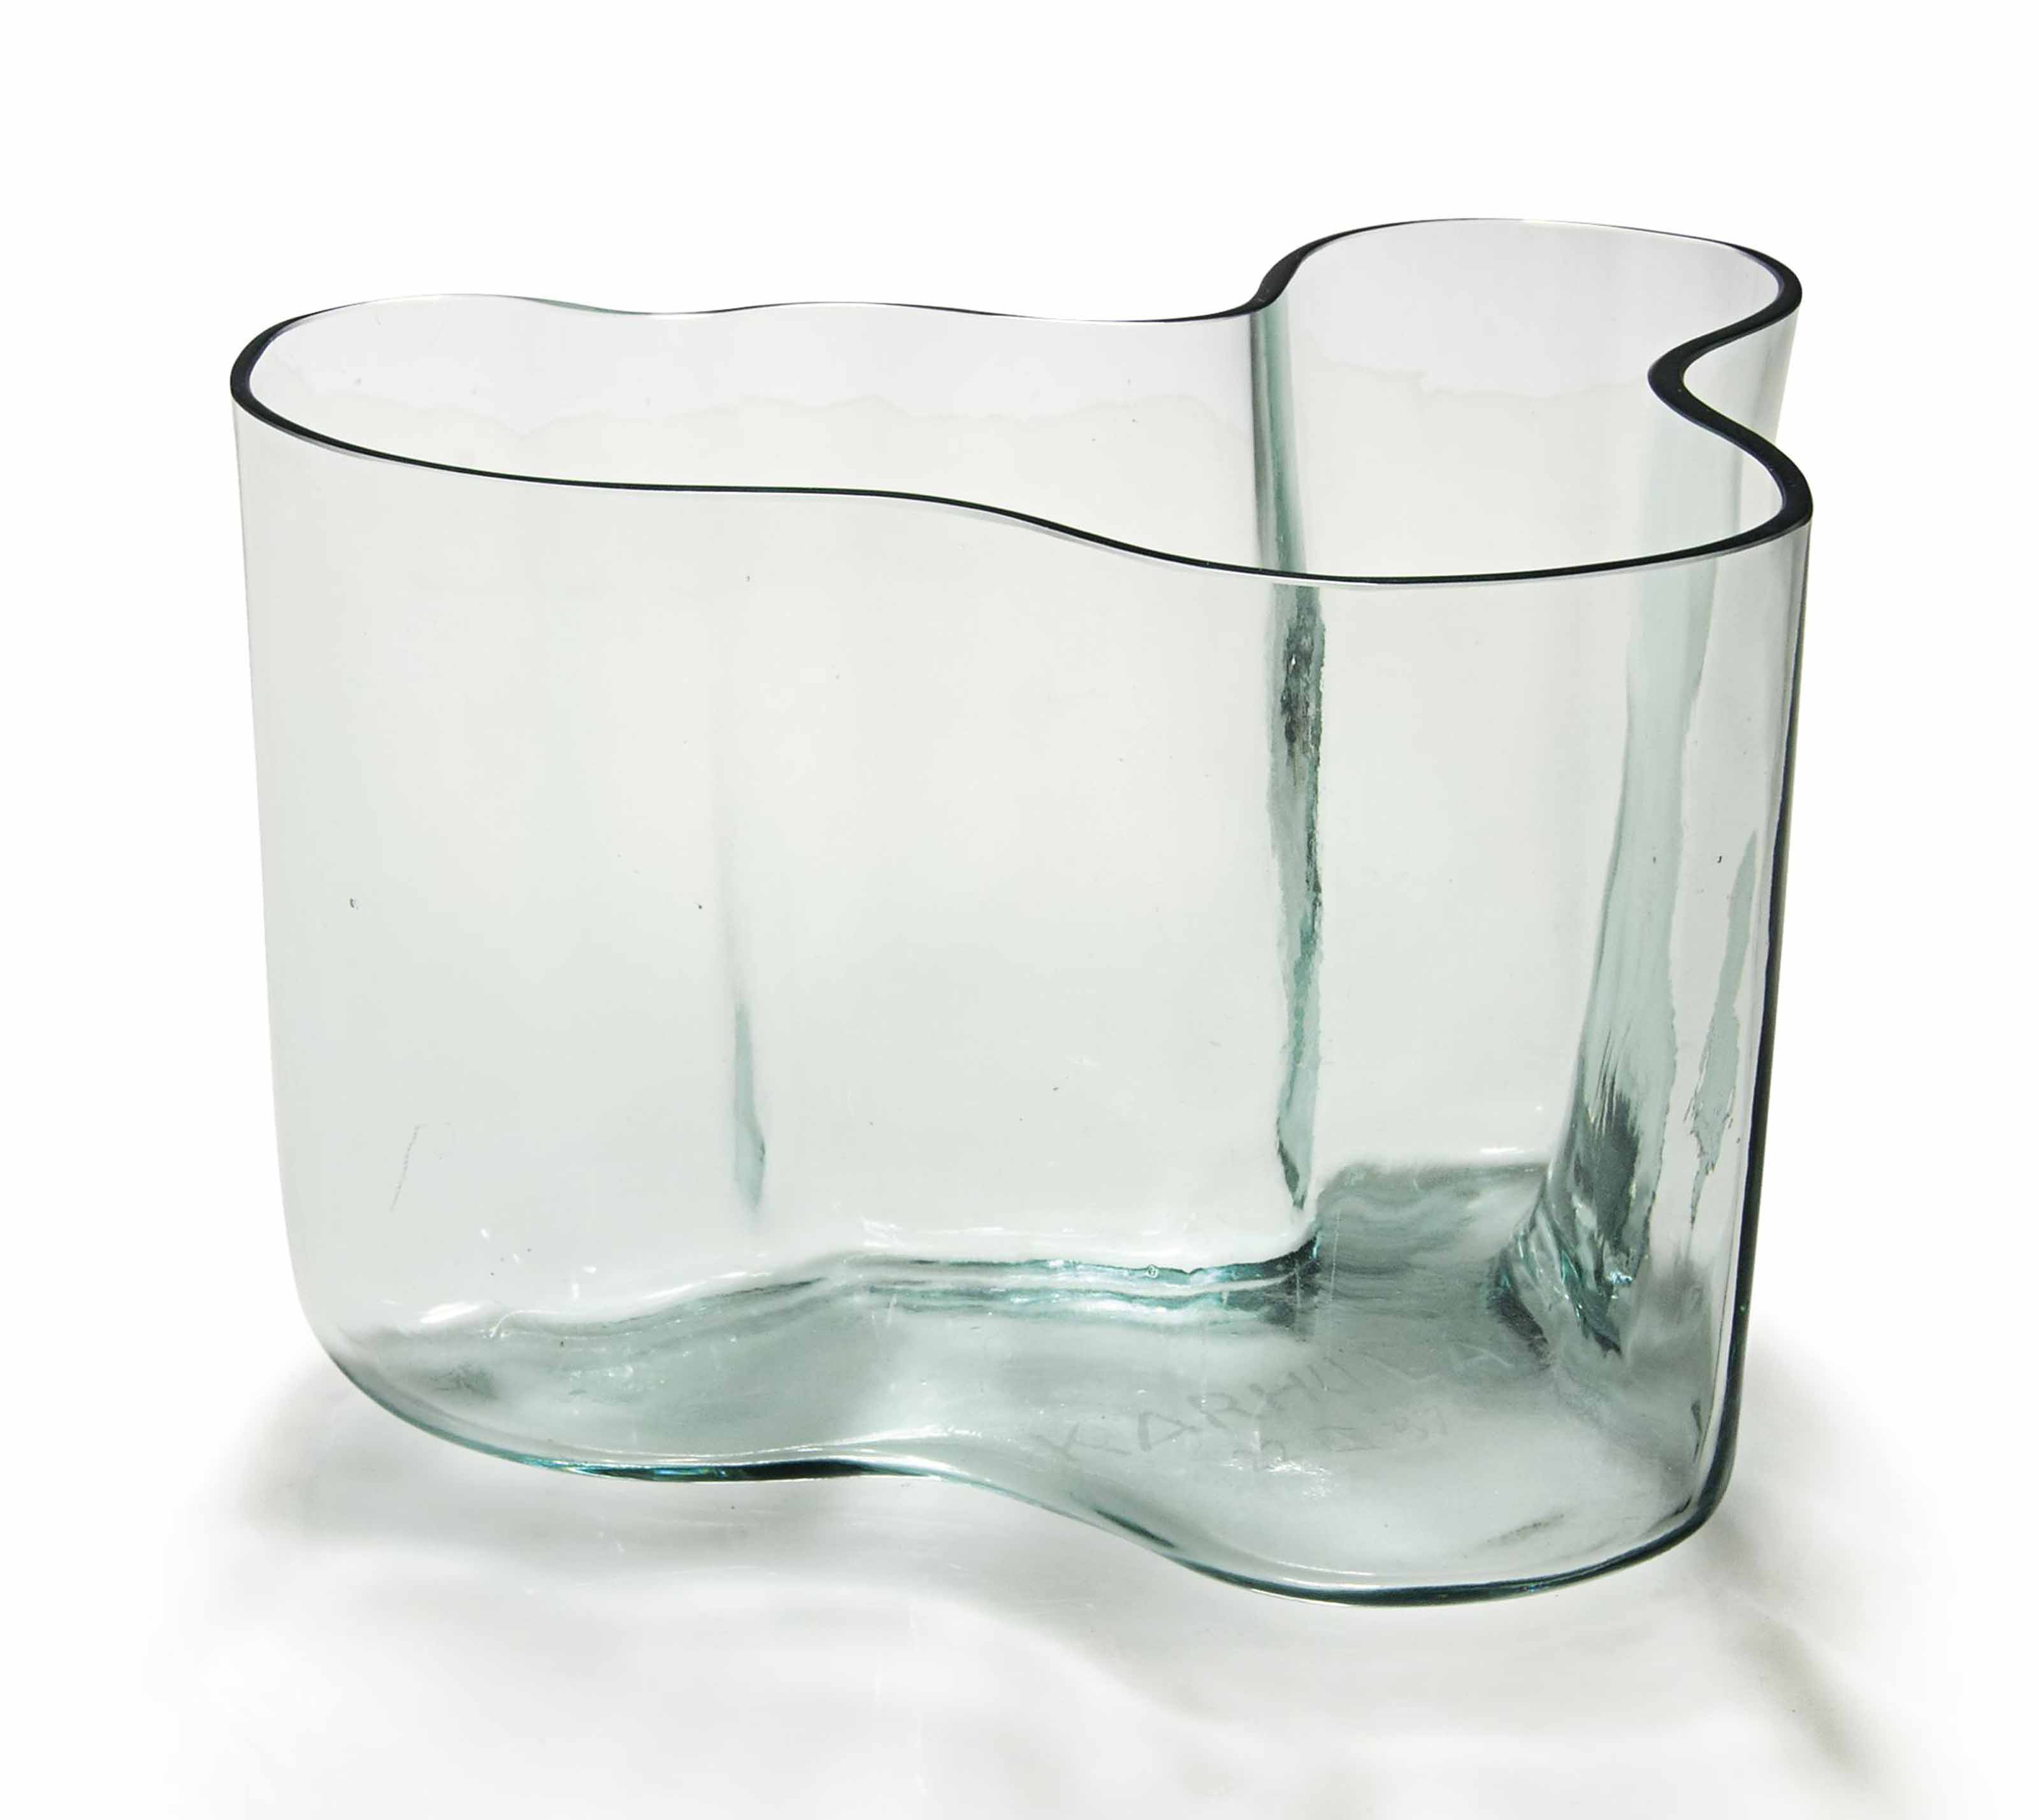 Savoy Vase Alvar Aalto 1898 1976 An Important And Early Savoy Vase